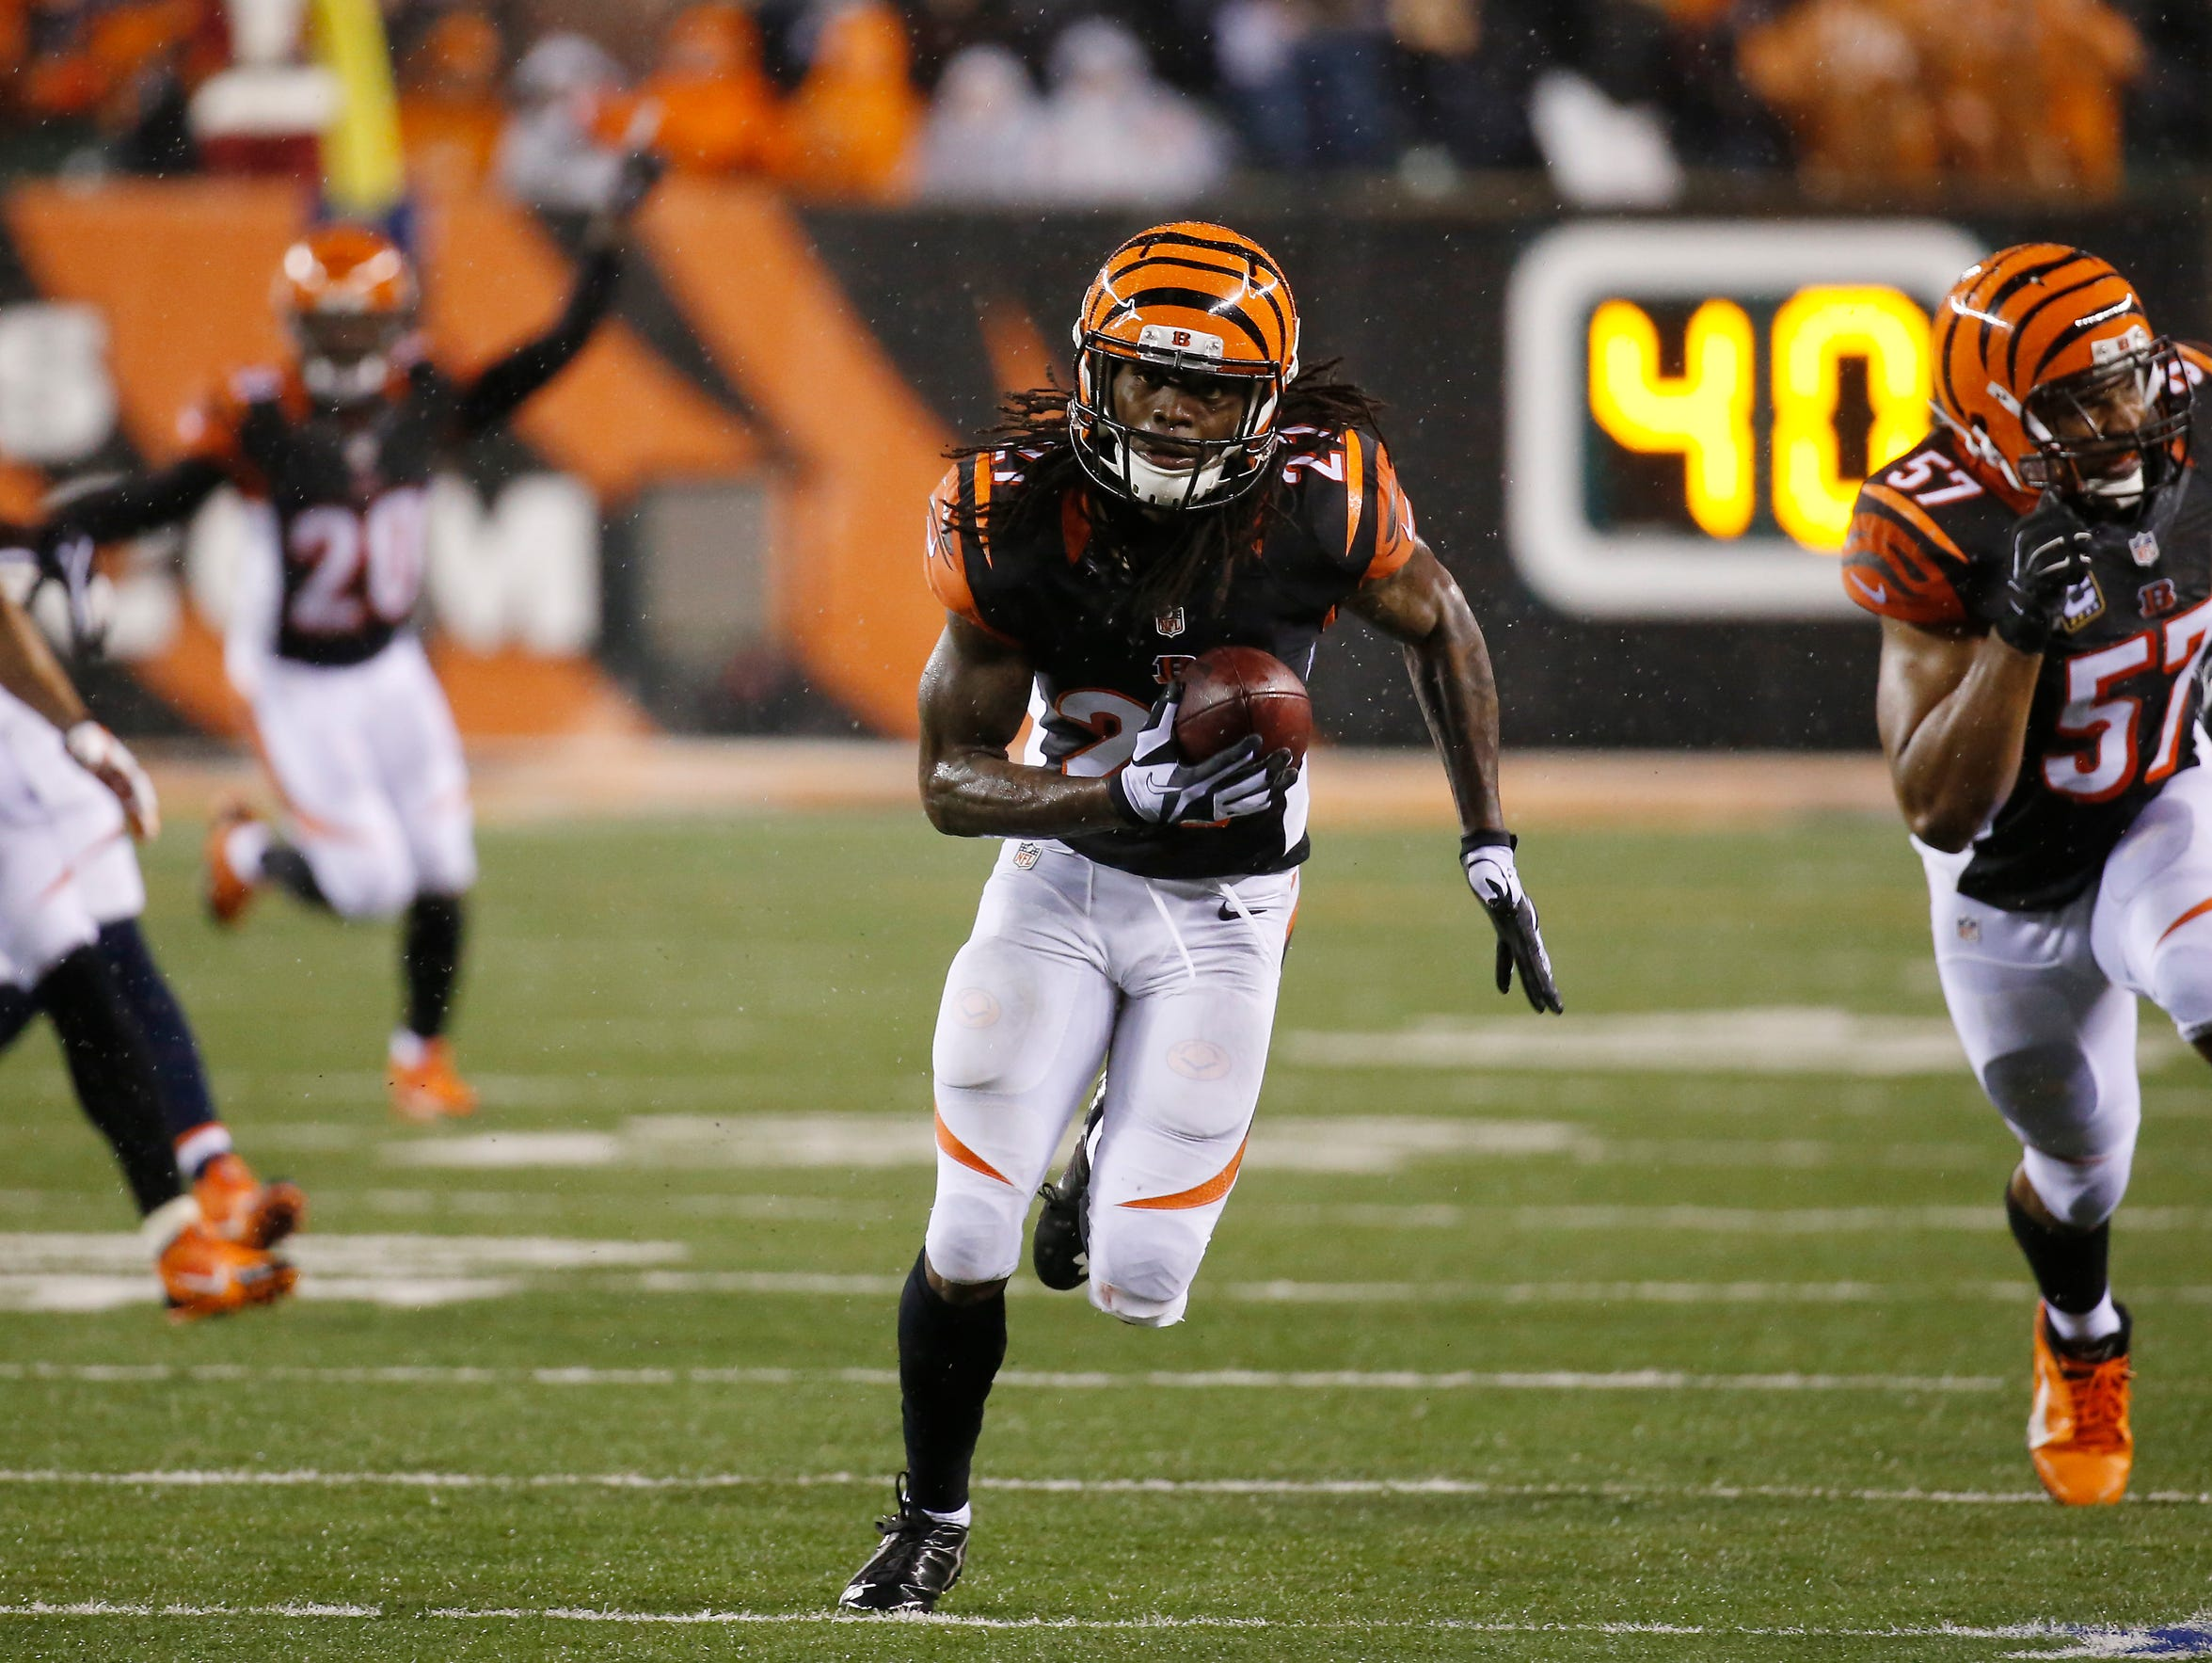 Bengals Dre Kirkpatrick The hard way every time